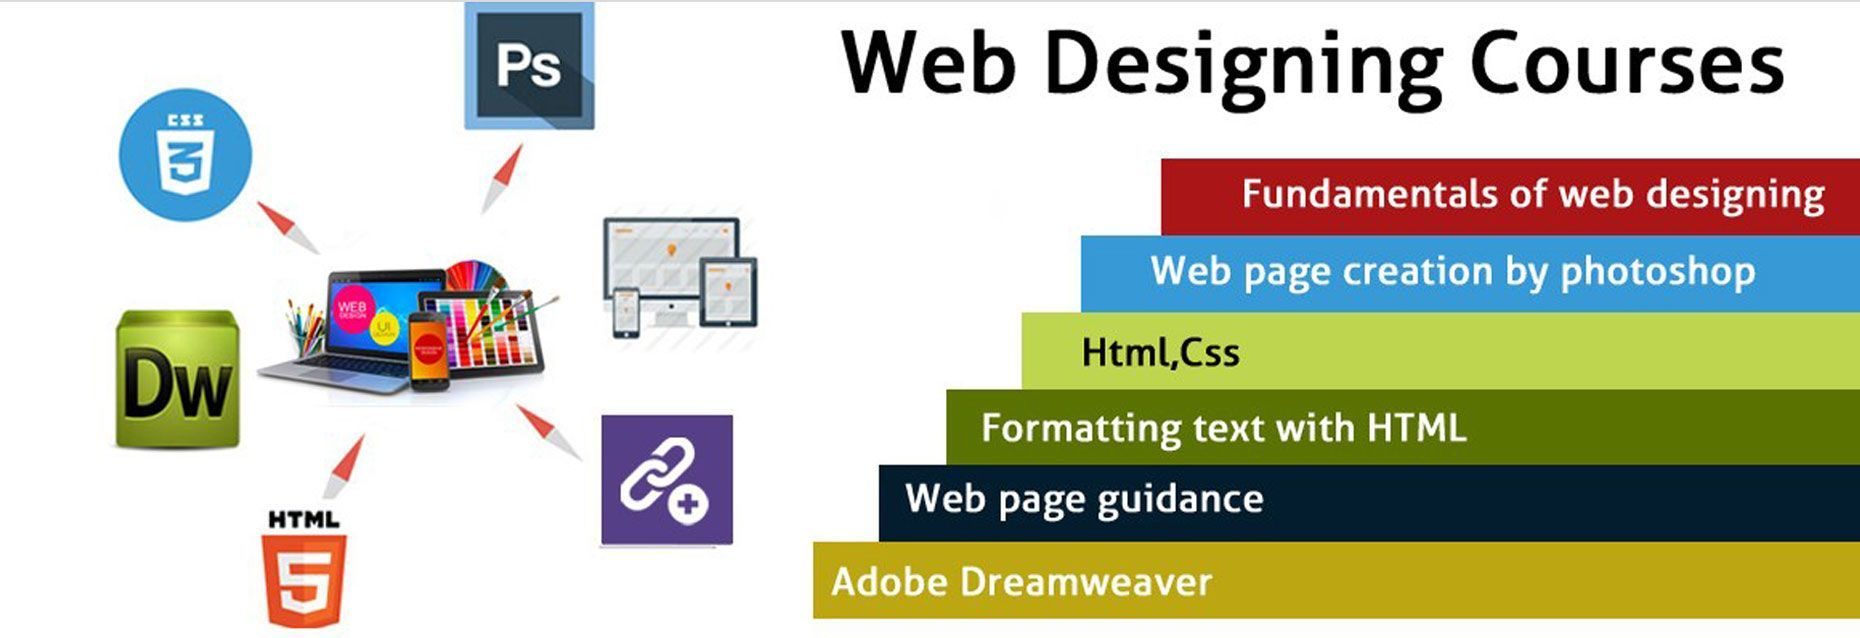 Diploma In Web Designing Information Technology Web Design Course Web Design Training Web Design Quotes